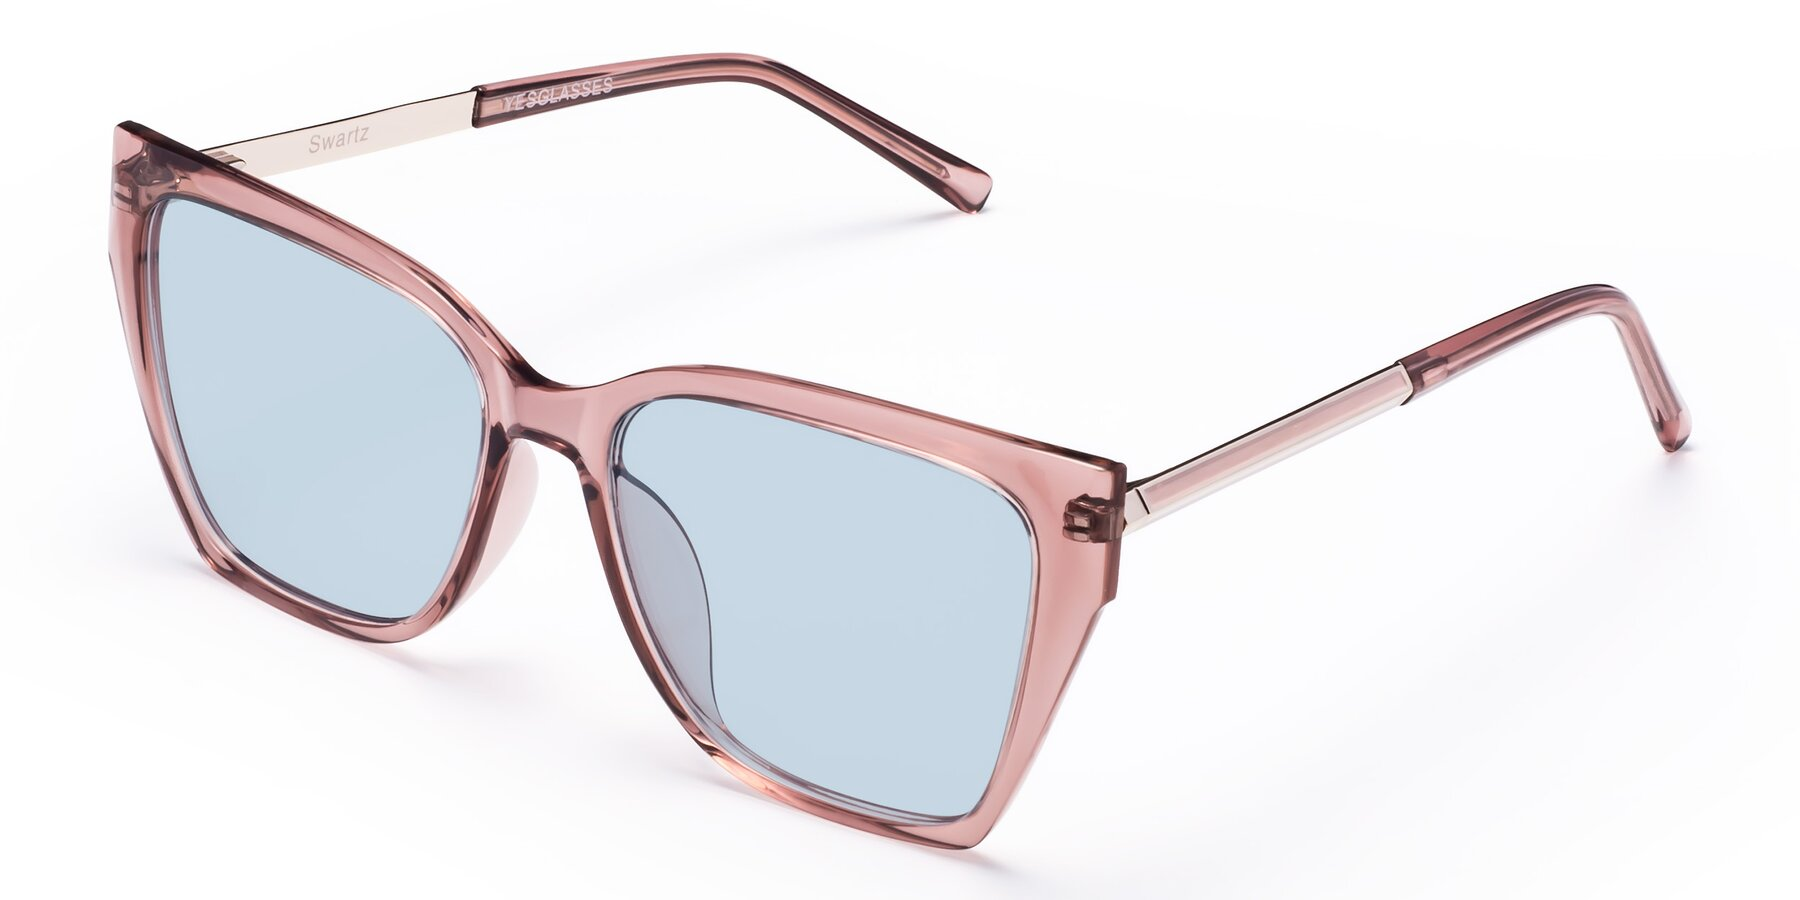 Angle of Swartz in Grape with Light Blue Tinted Lenses